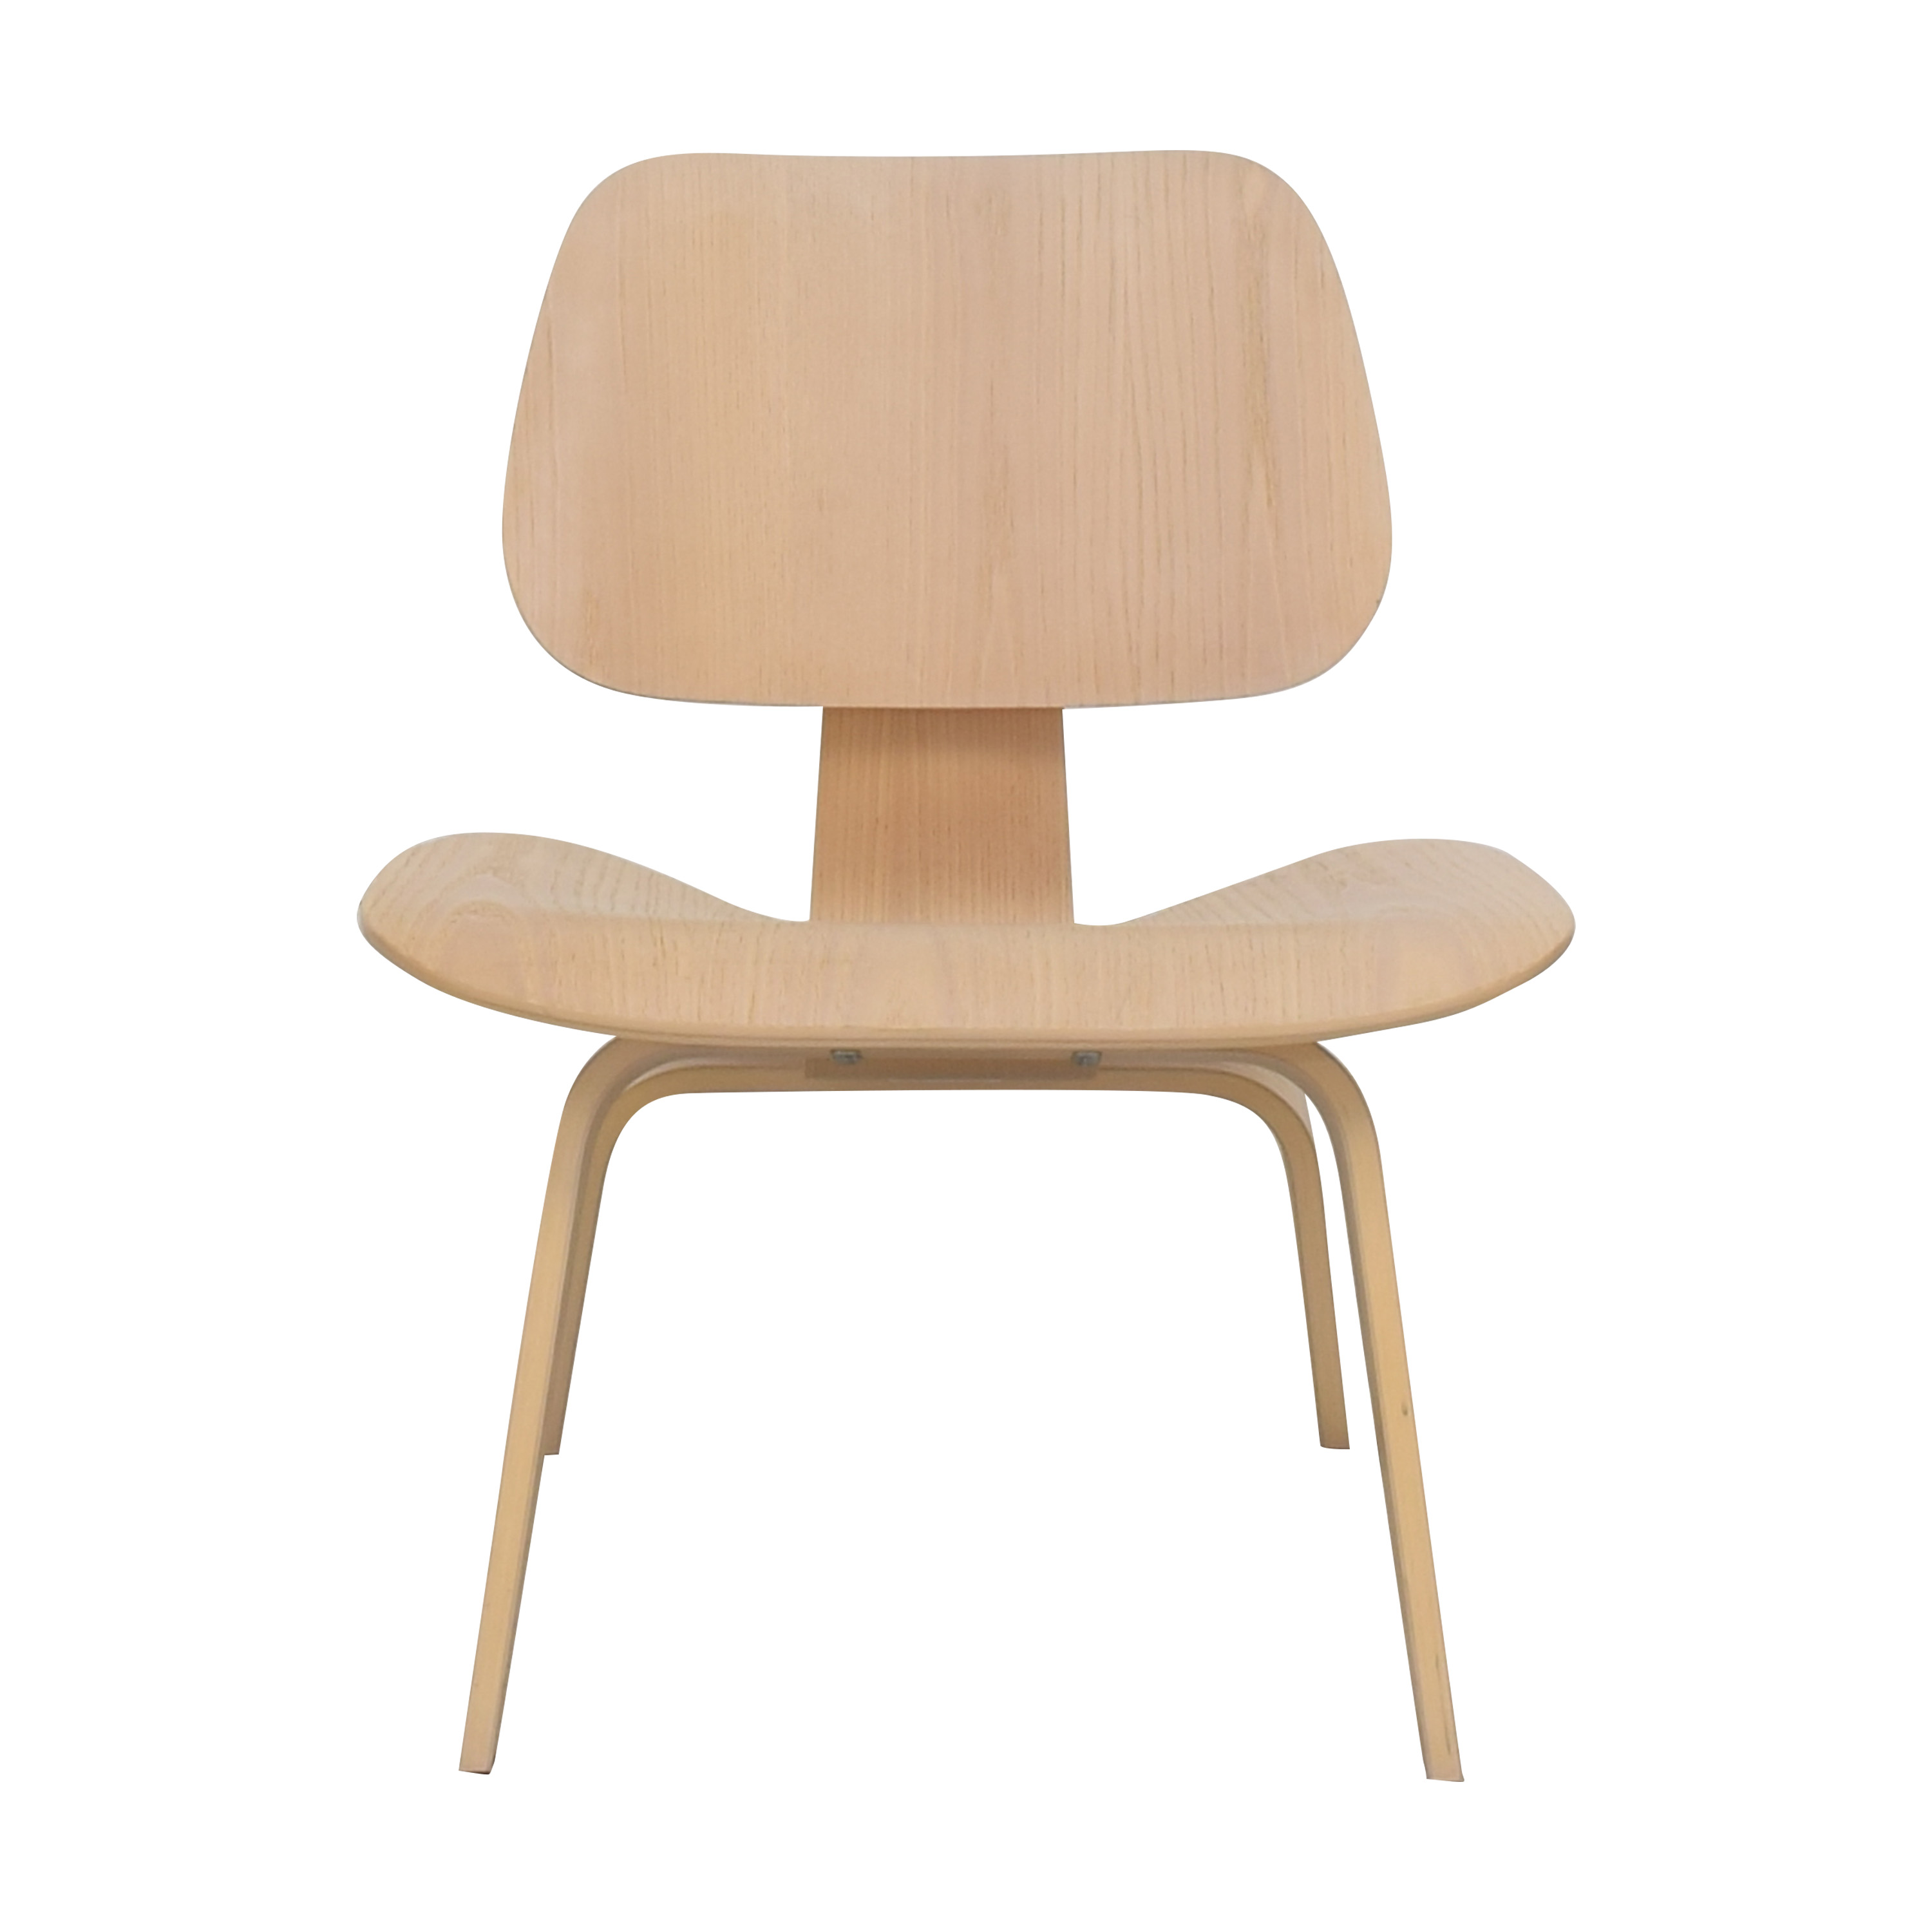 Herman Miller Herman Miller Eames Office Molded Plywood Lounge Chair Accent Chairs